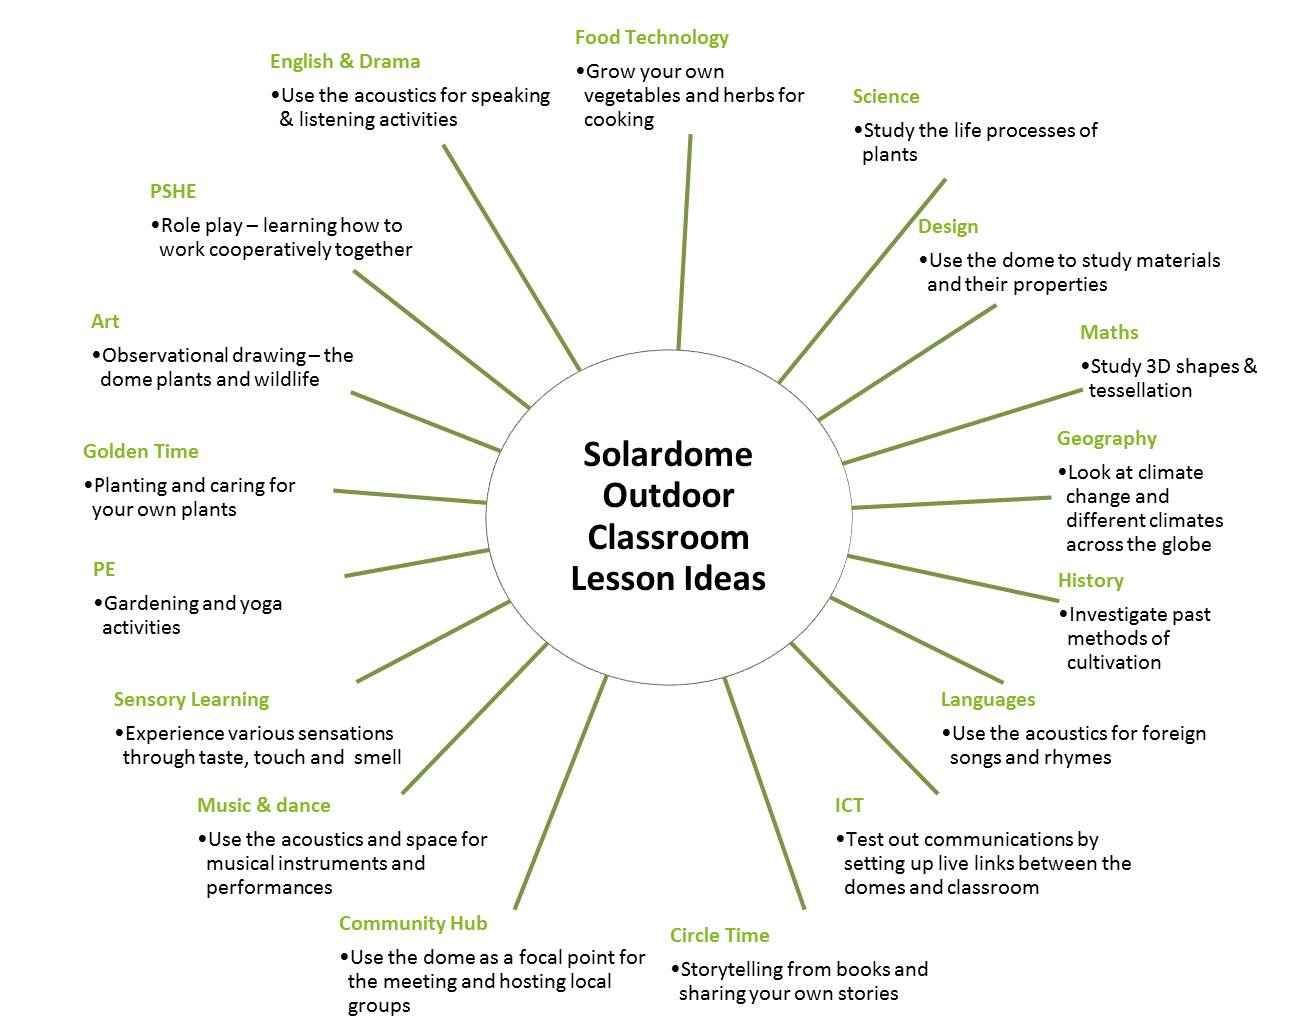 Solardome outdoor classroom lesson ideas